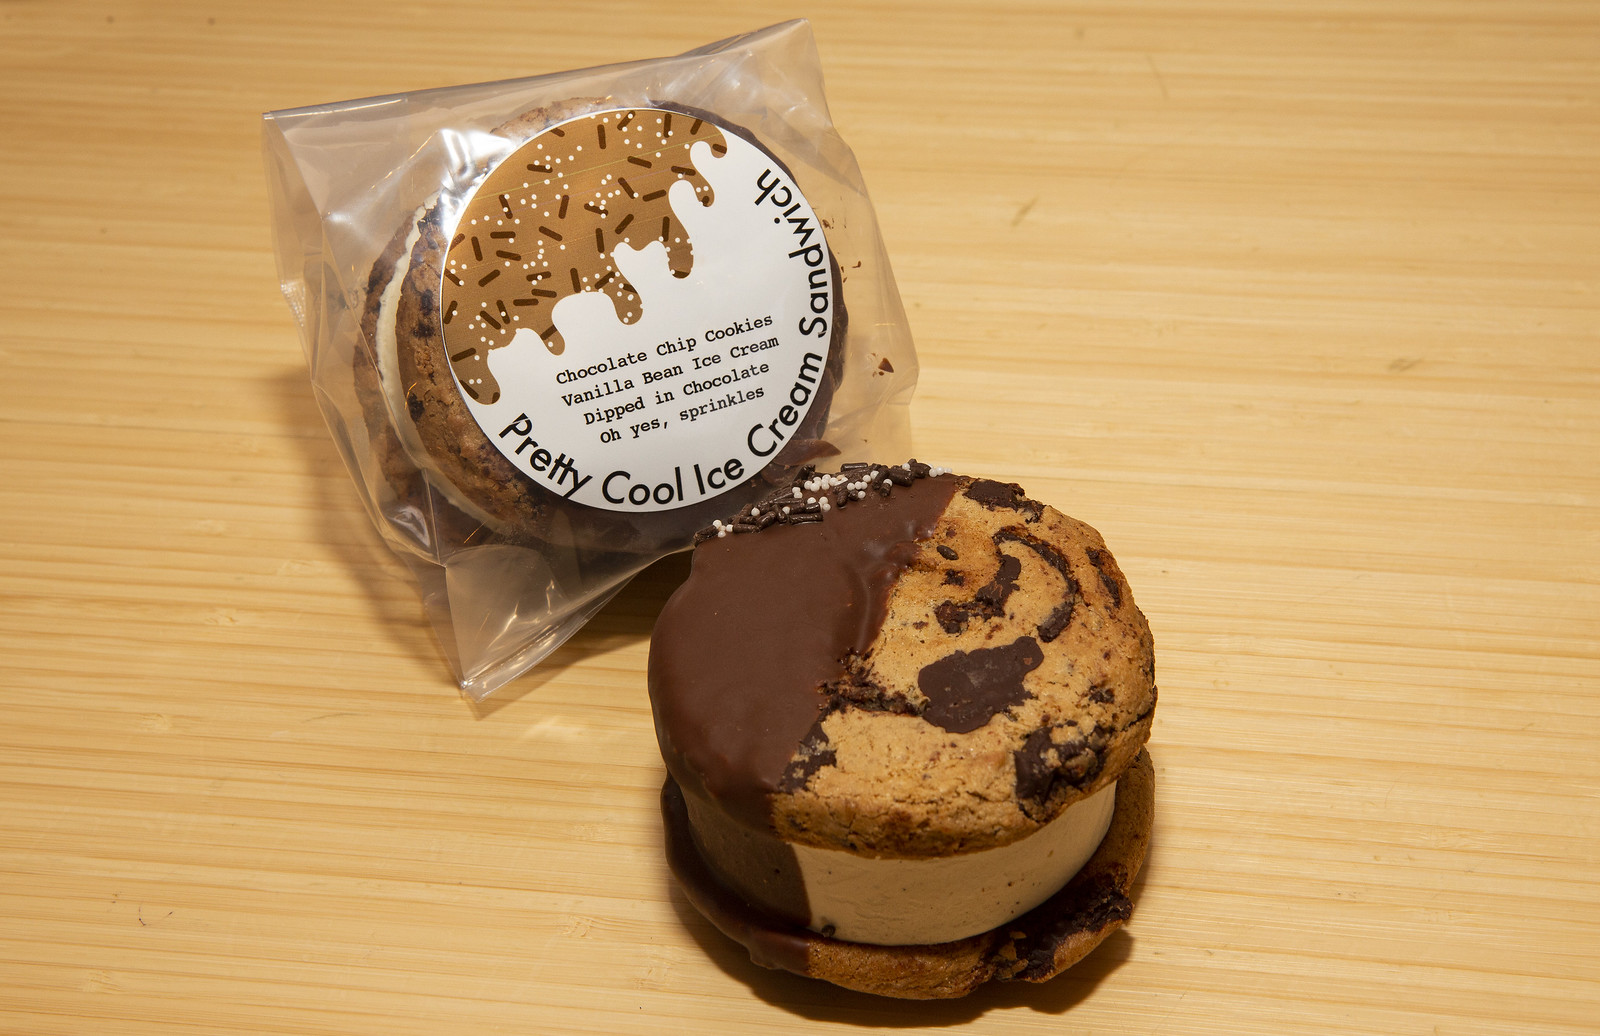 A packaged ice cream sandwich in plastic next to an ice cream sandwich with large cookies.